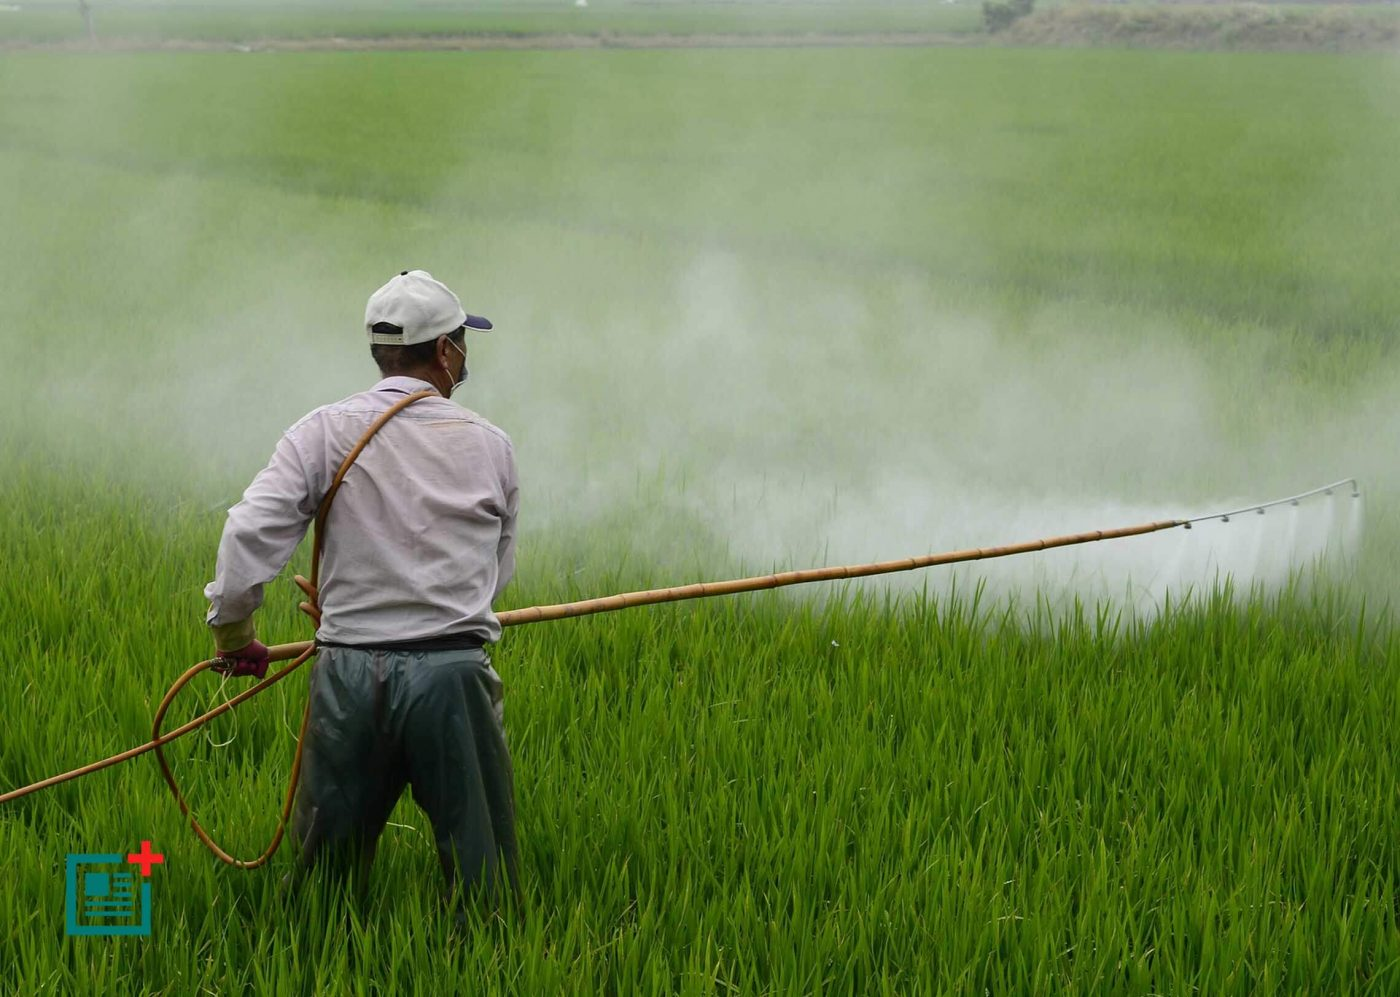 Do You Know A Pesticide Exposure Alters The Bacteria In Your Mouth?